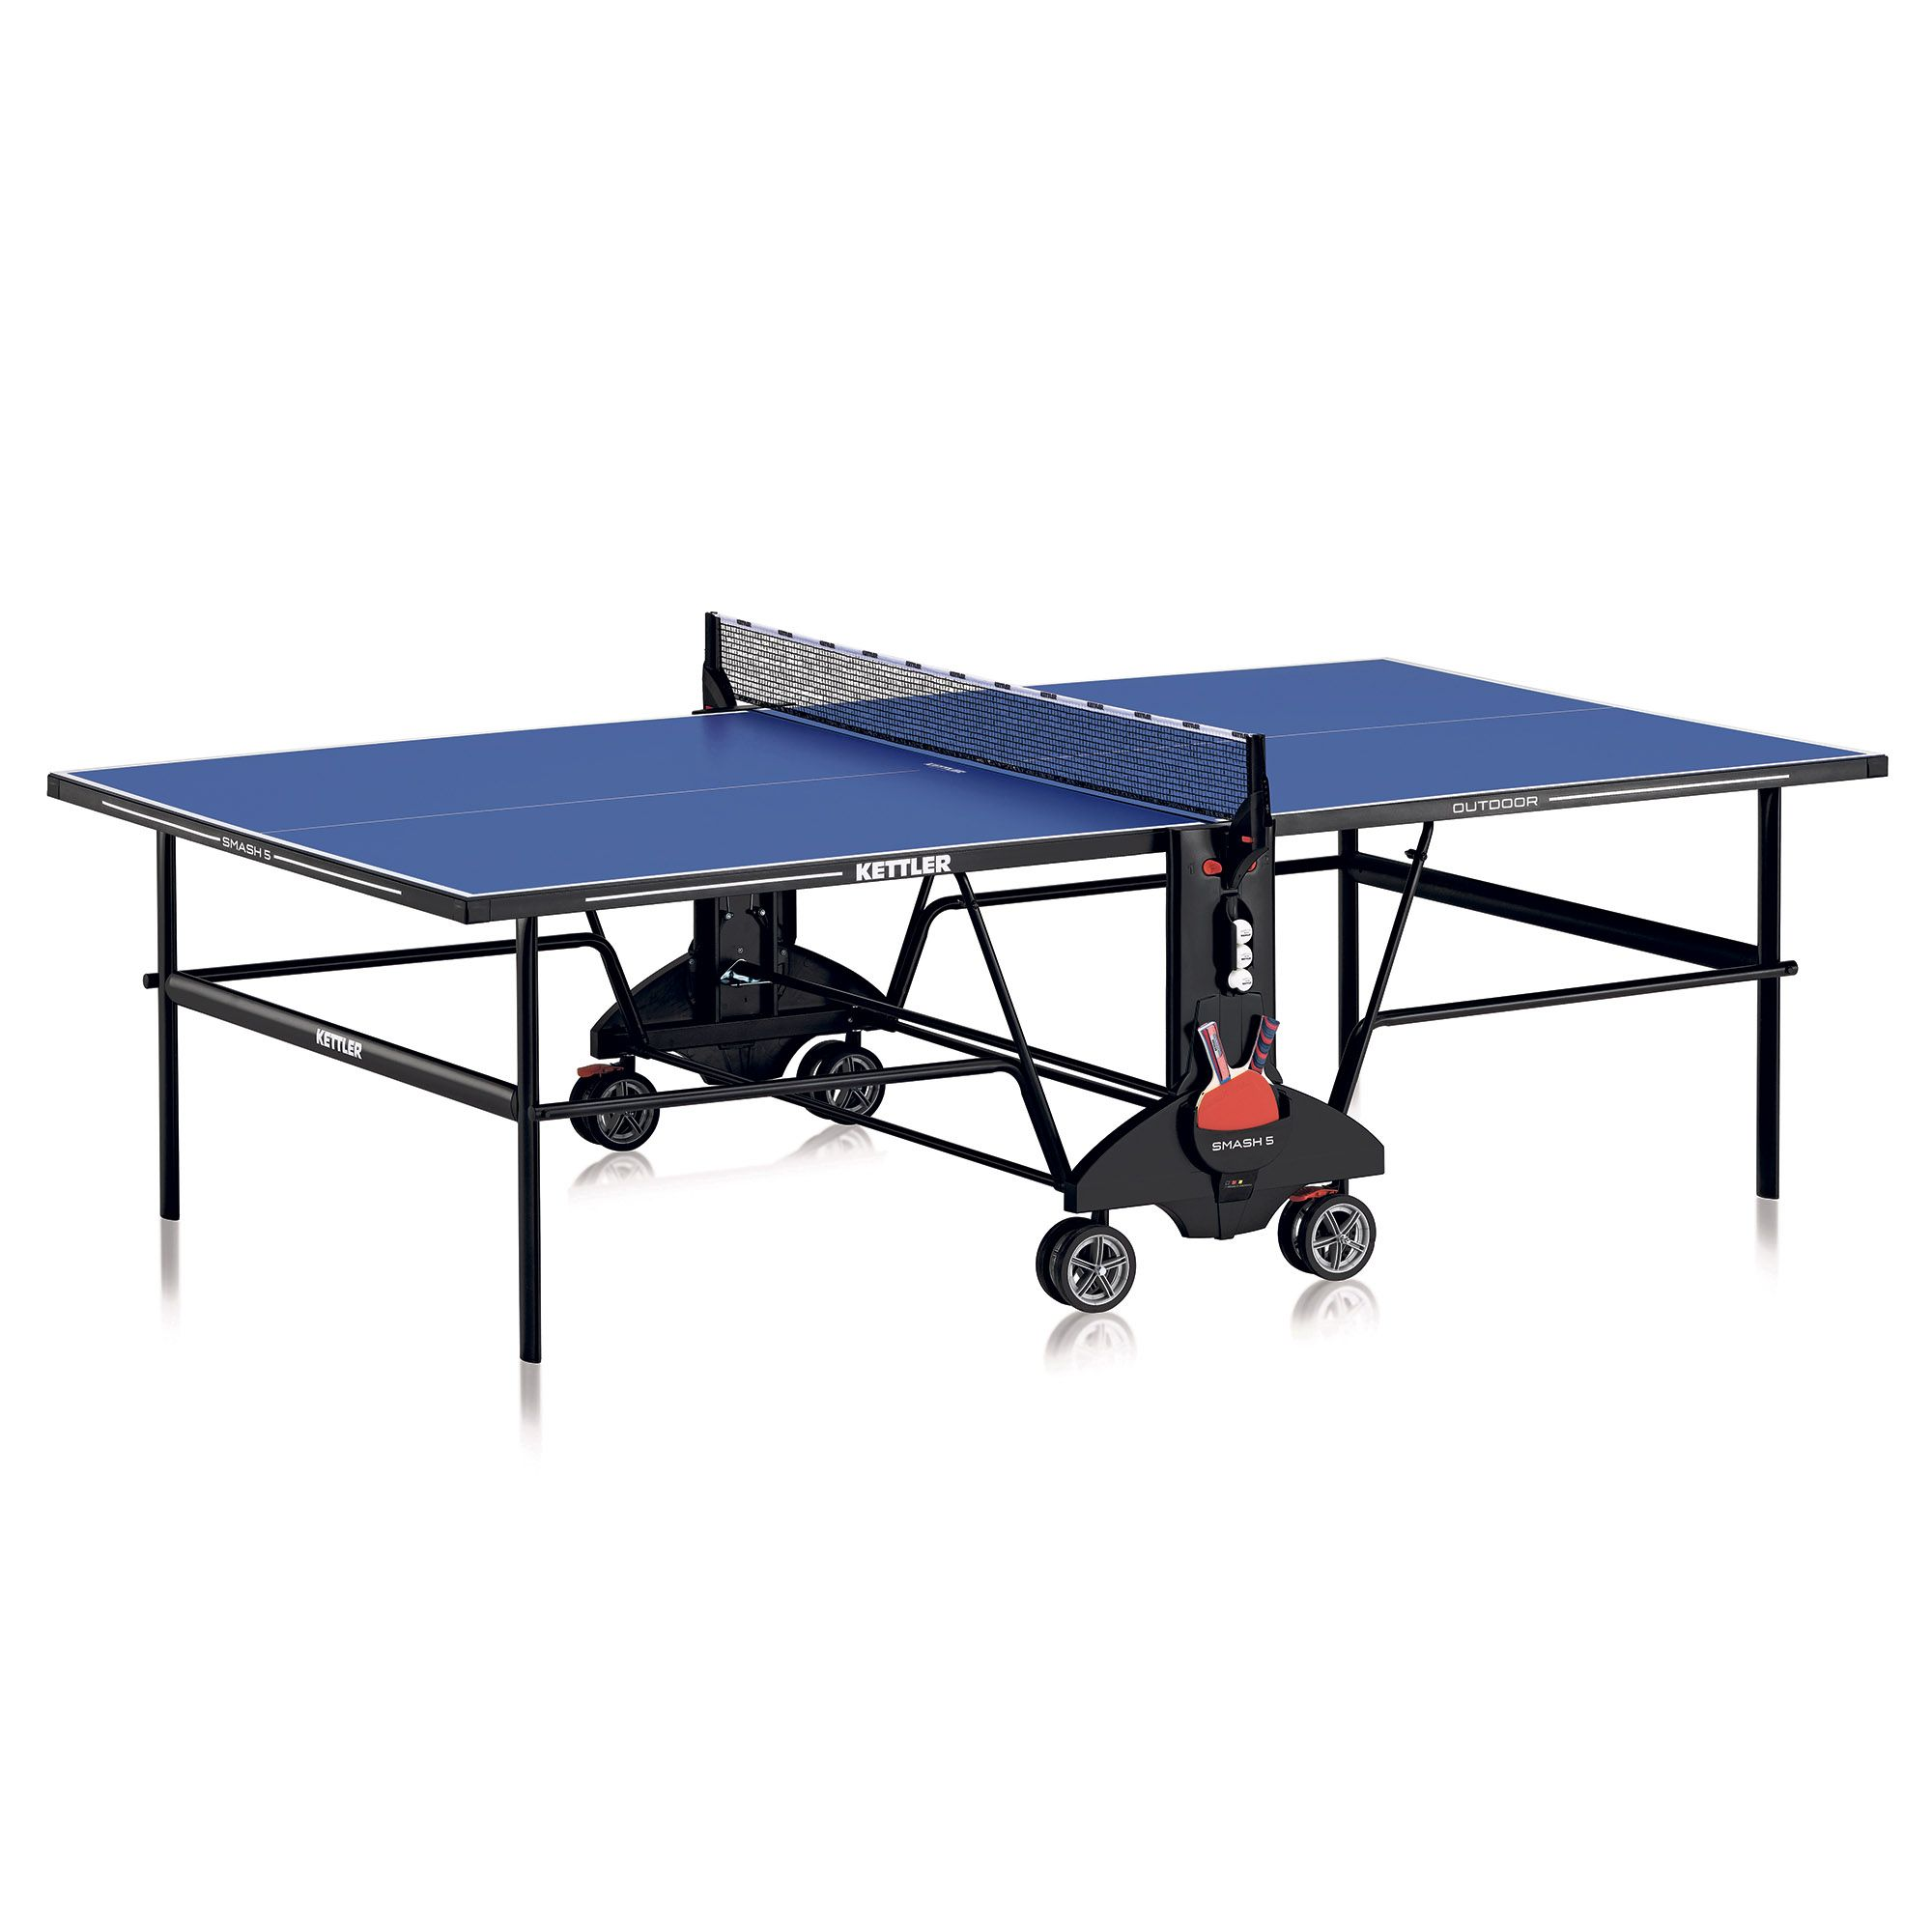 kettler smash 5 0 outdoor table tennis table. Black Bedroom Furniture Sets. Home Design Ideas